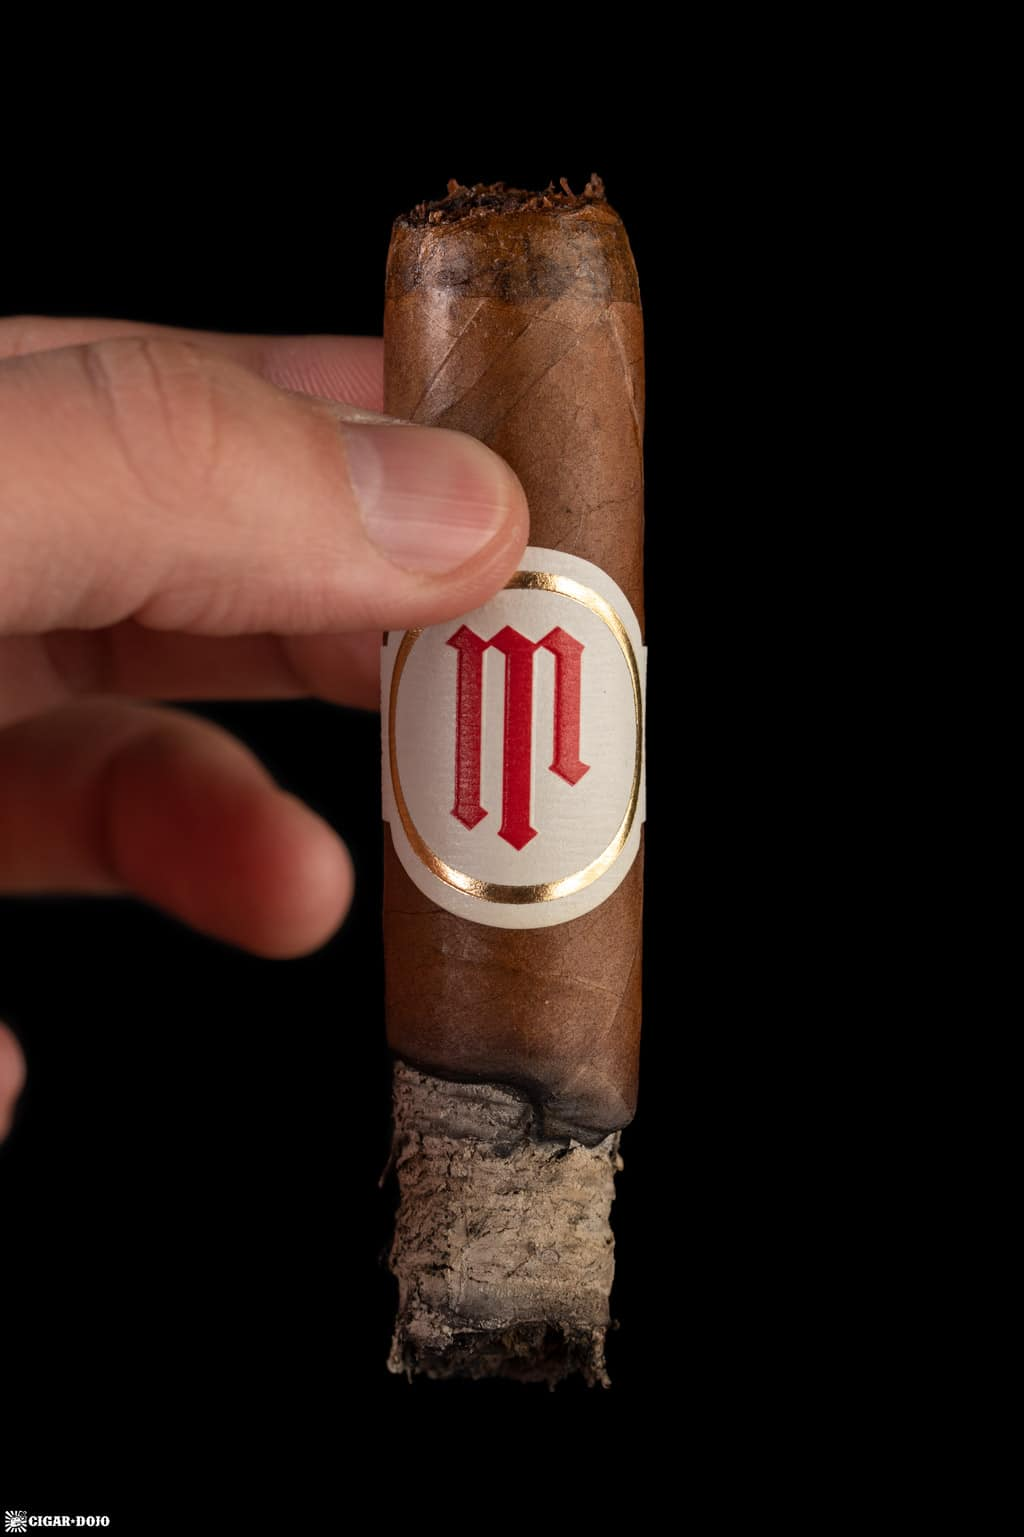 Crowned Heads Mil Días Double Robusto cigar ash